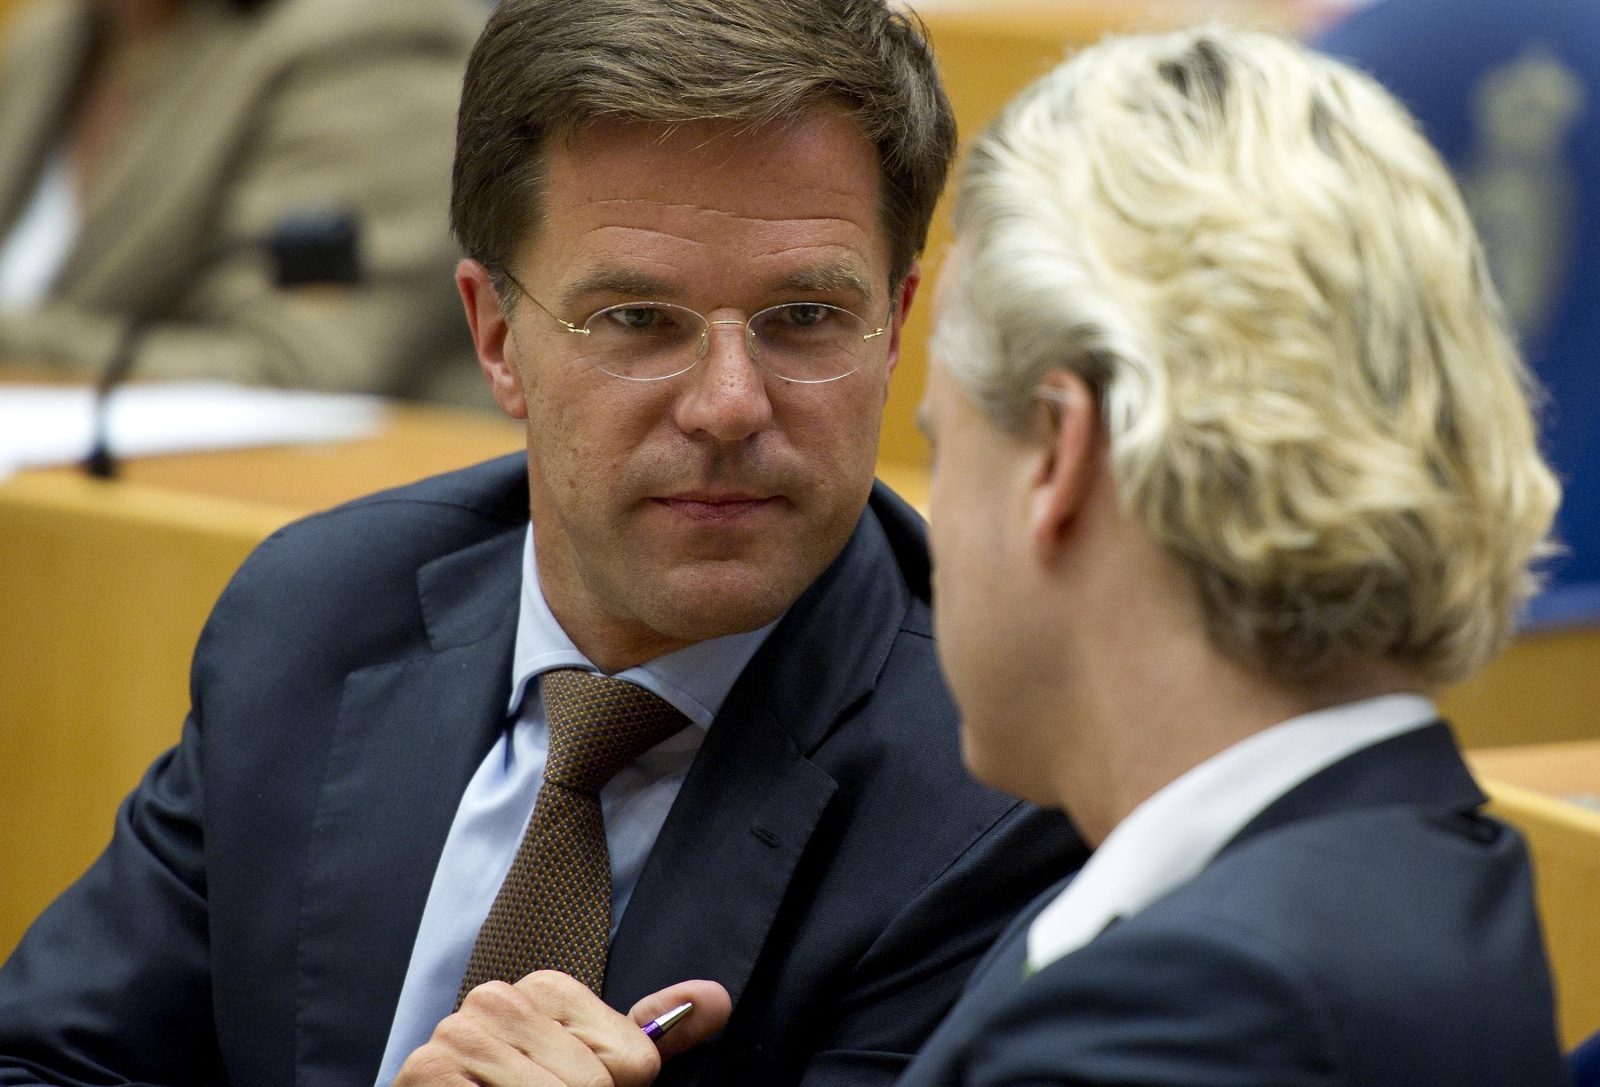 Mark Rutte and Geert Wilders